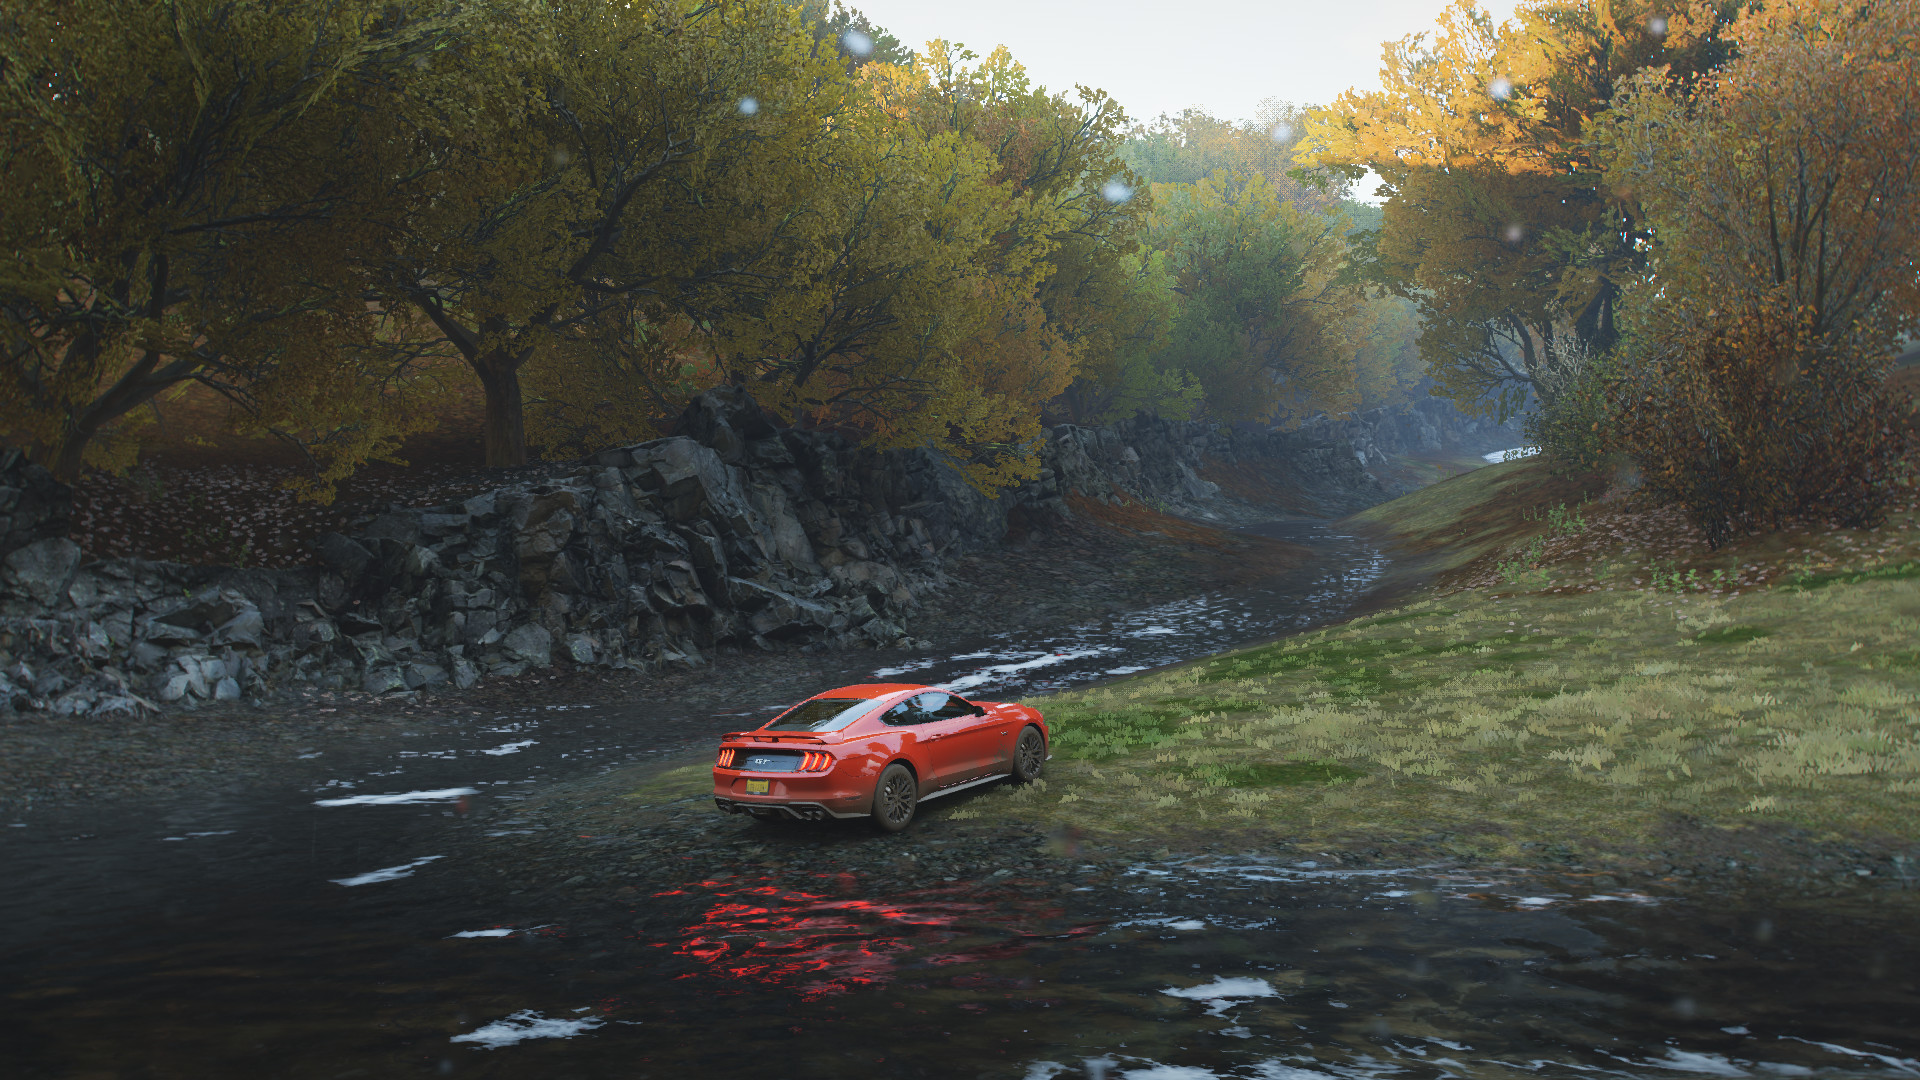 Stefan oprisan forza horizon 4 screenshot 2018 11 17 21 30 55 33